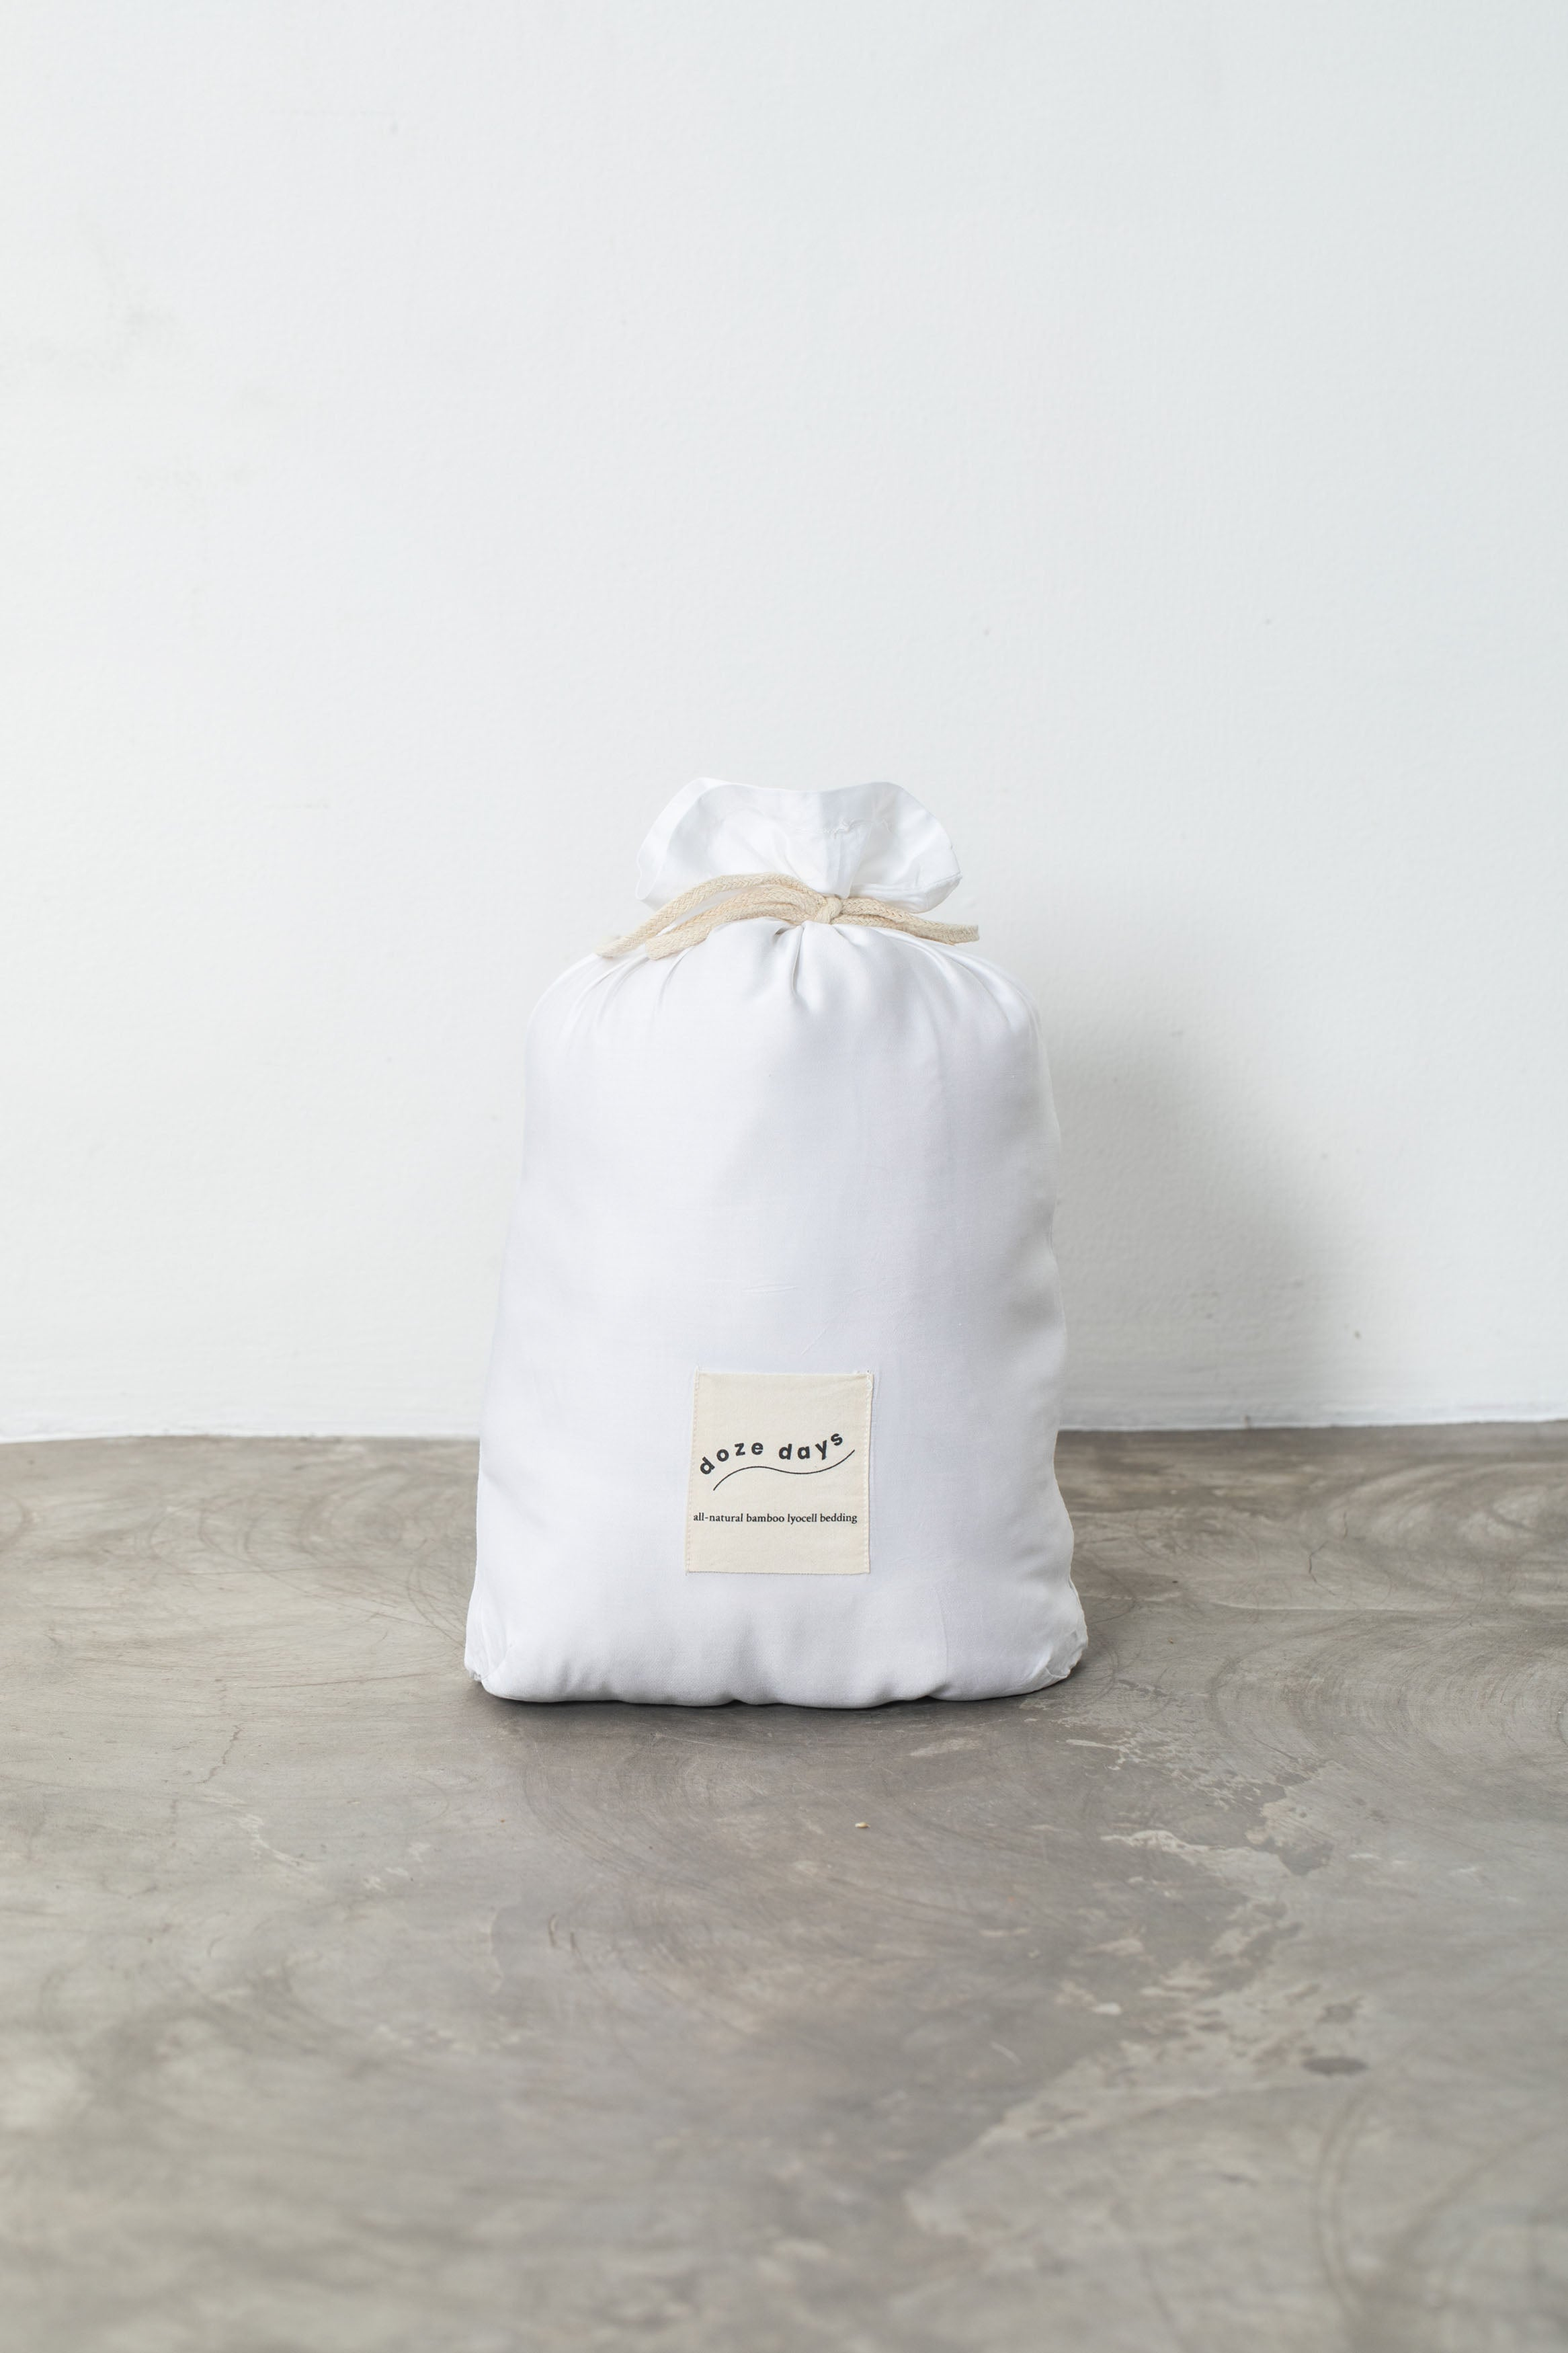 bamboo lyocell duvet cover in cloud